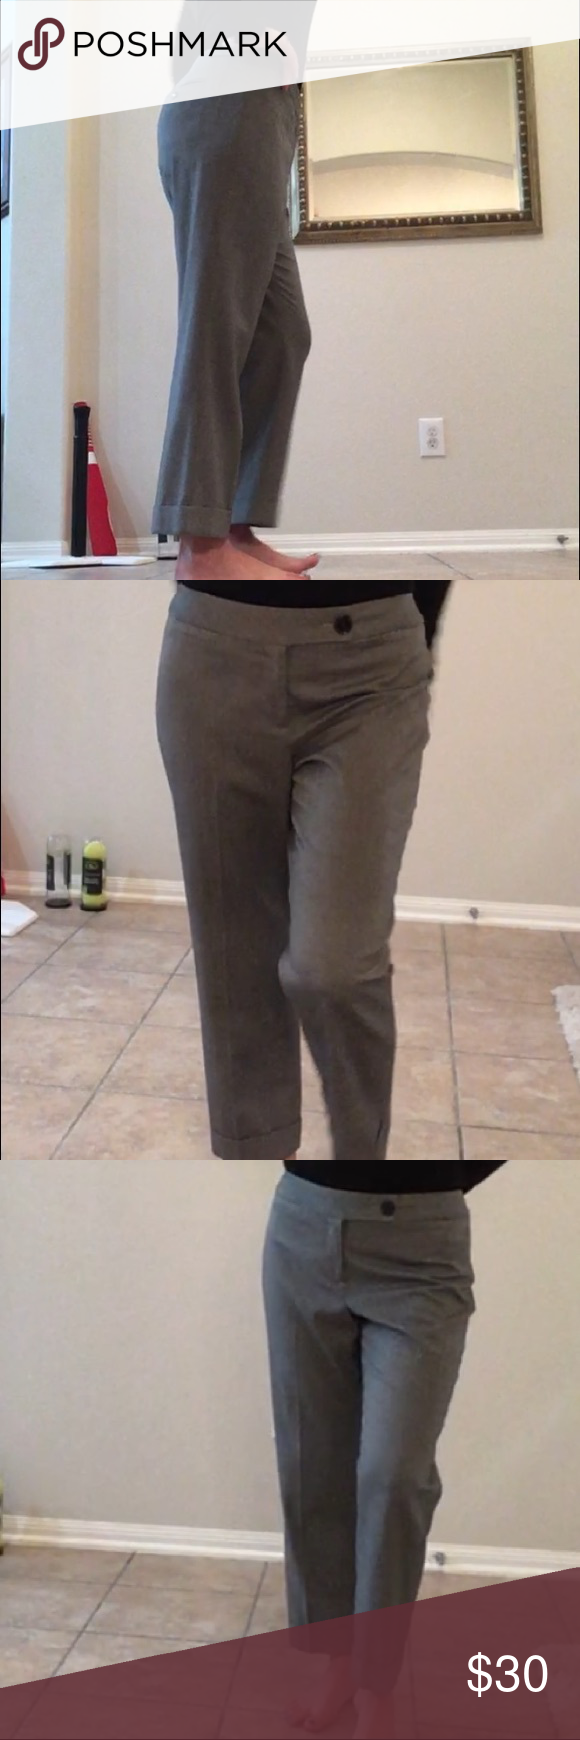 Loft Julie cuffed cropped gray and white slacks Loft Julie cuffed cropped gray and white slacks LOFT Pants Ankle & Cropped #whiteslacks Loft Julie cuffed cropped gray and white slacks Loft Julie cuffed cropped gray and white slacks LOFT Pants Ankle & Cropped #whiteslacks